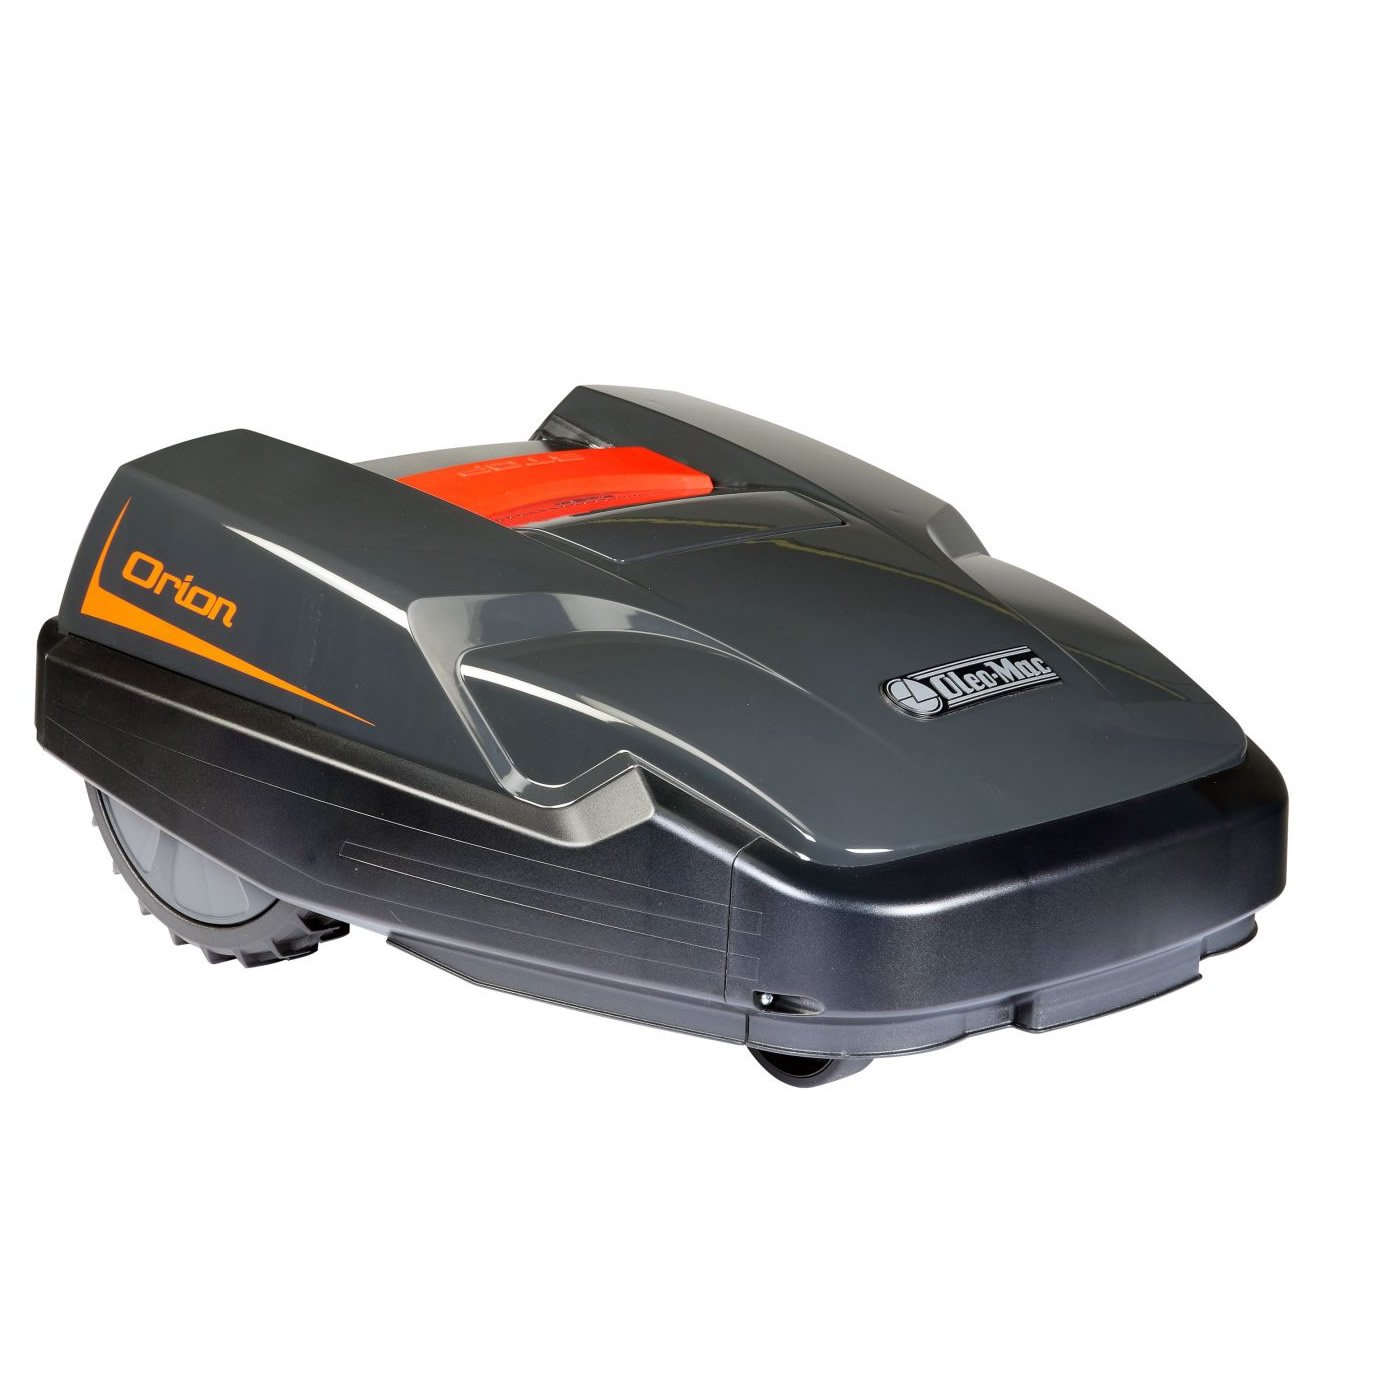 Oleo-Mac Orion Fully Automated Robotic Lawn Mower with Docking Station